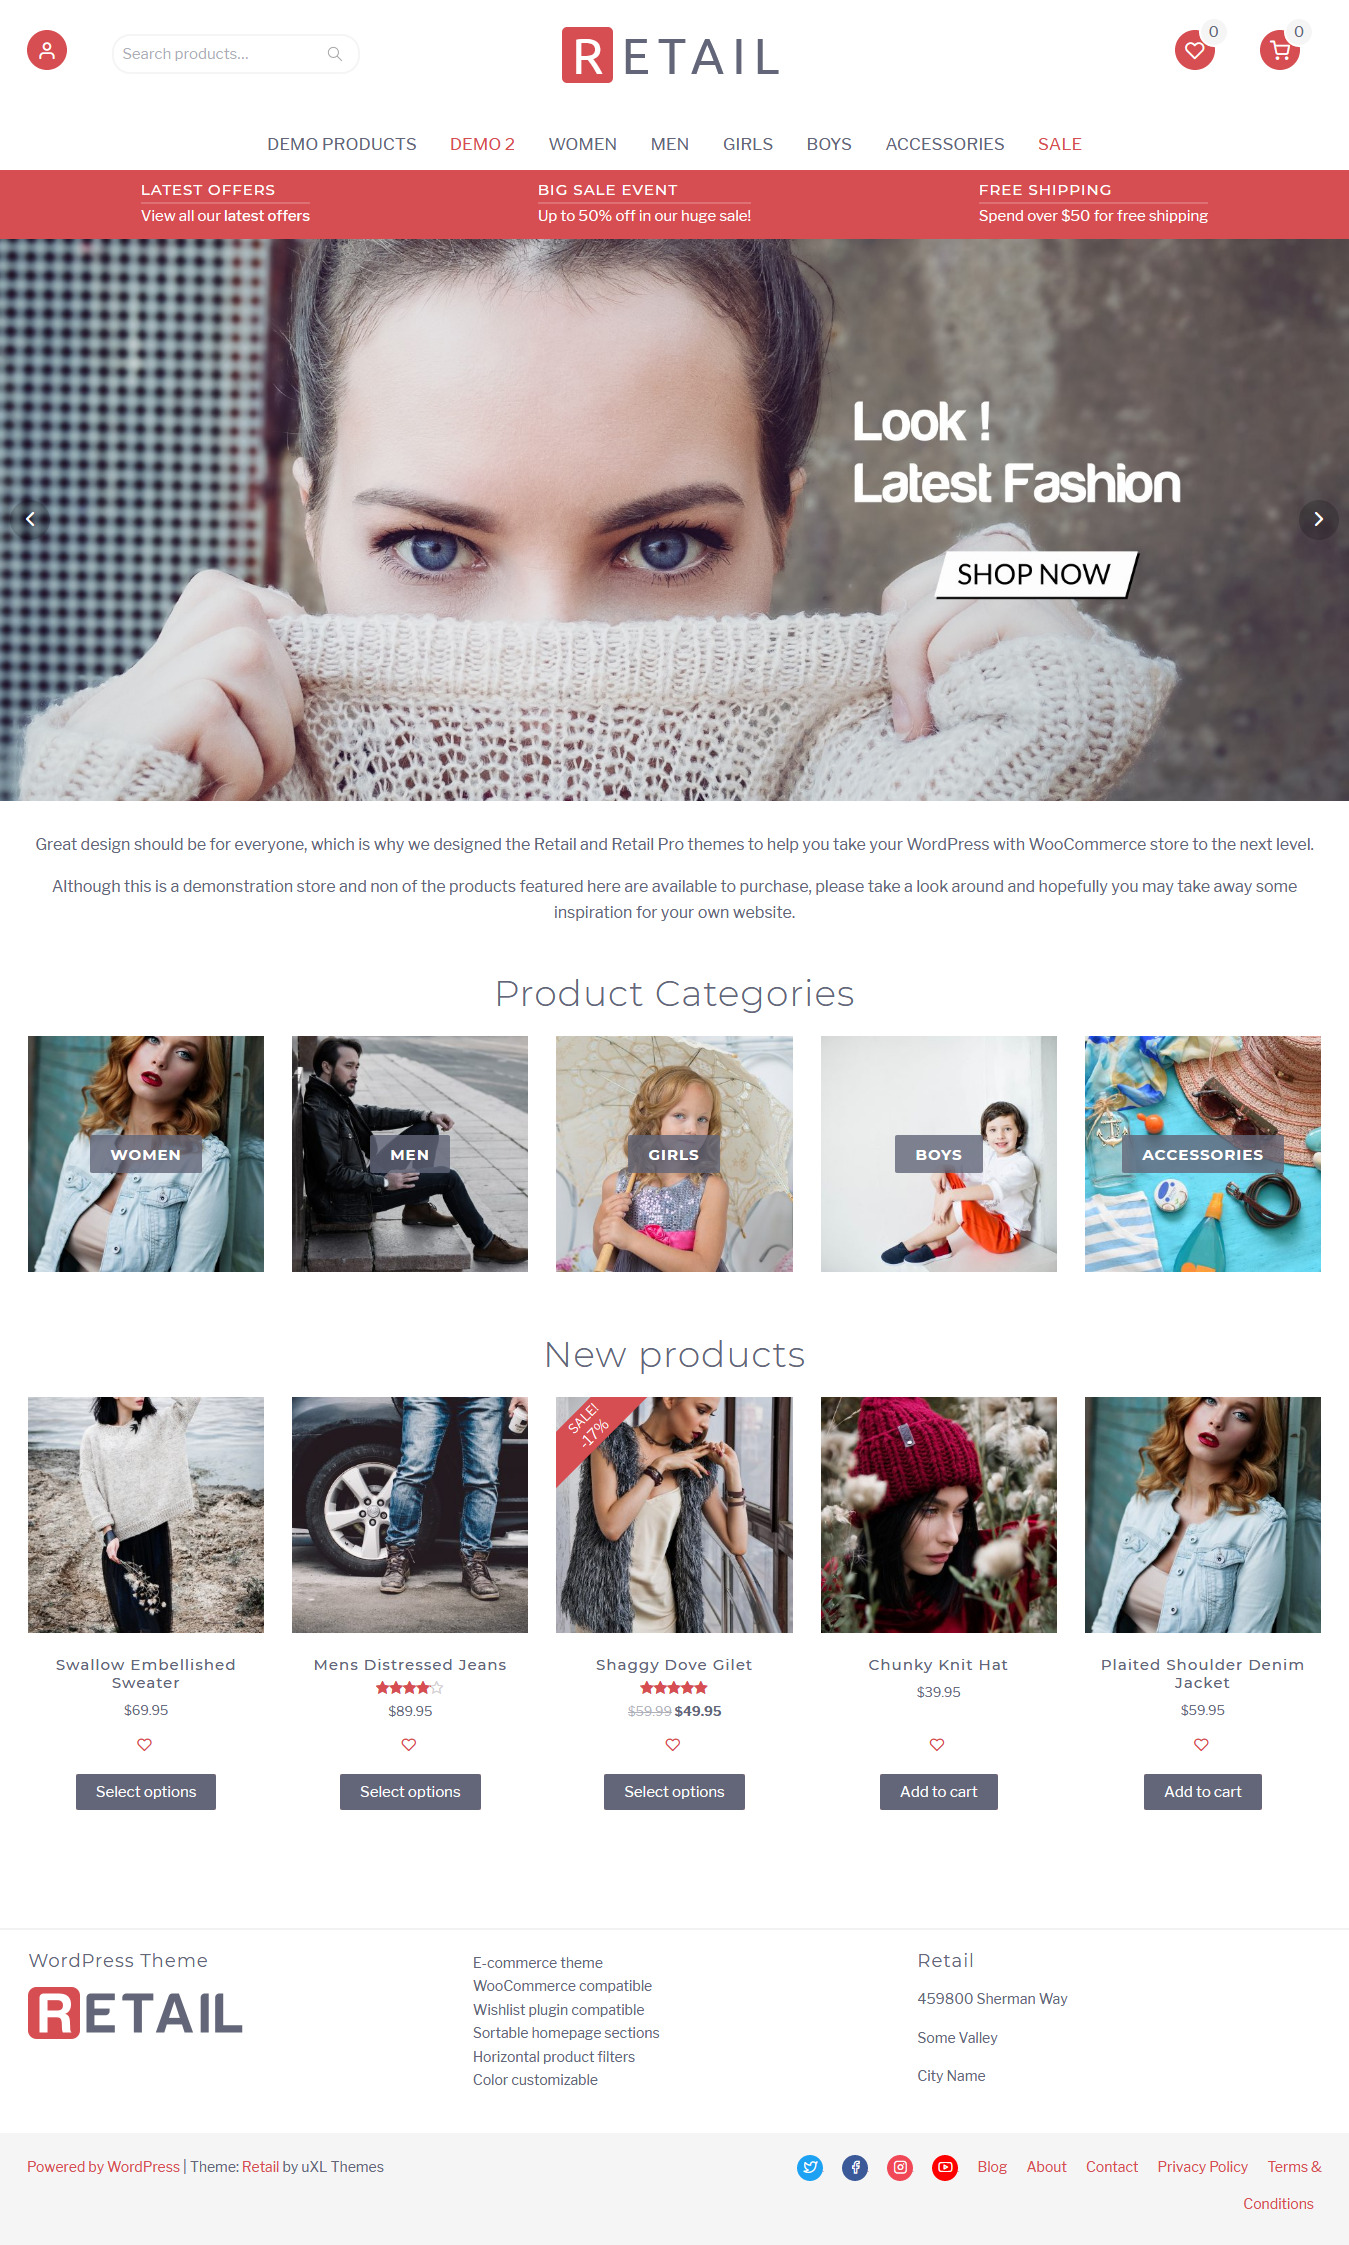 Retail Shop - Best Free Retail Shop WordPress Theme